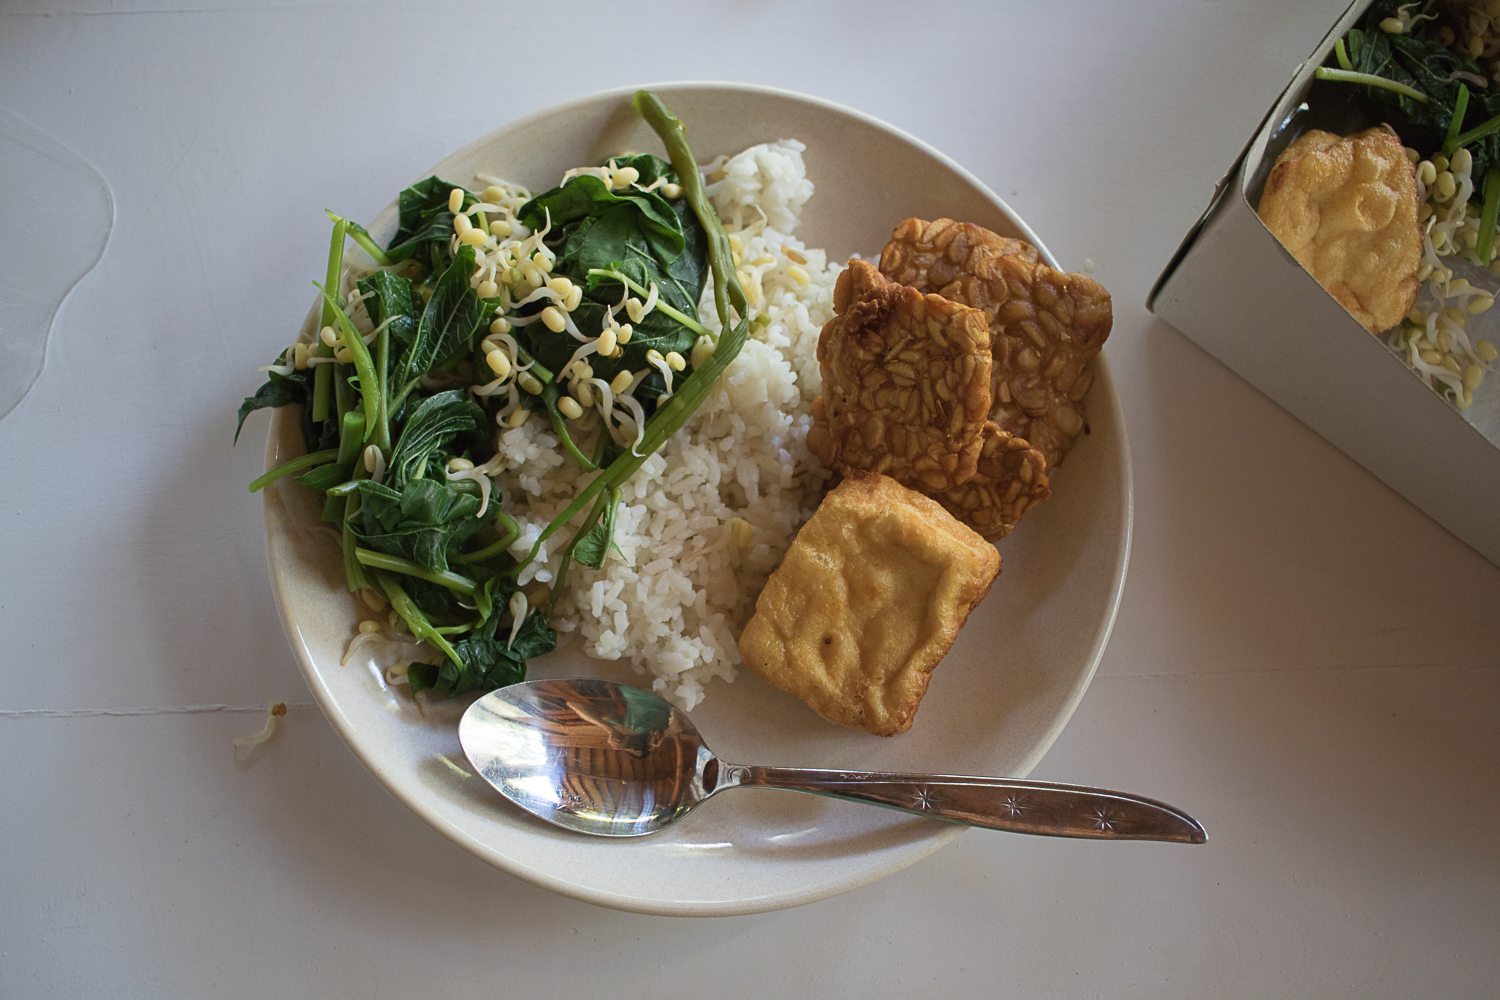 Typical Indonesian meal consisting of rice, tofu, tempe, and water spinach.